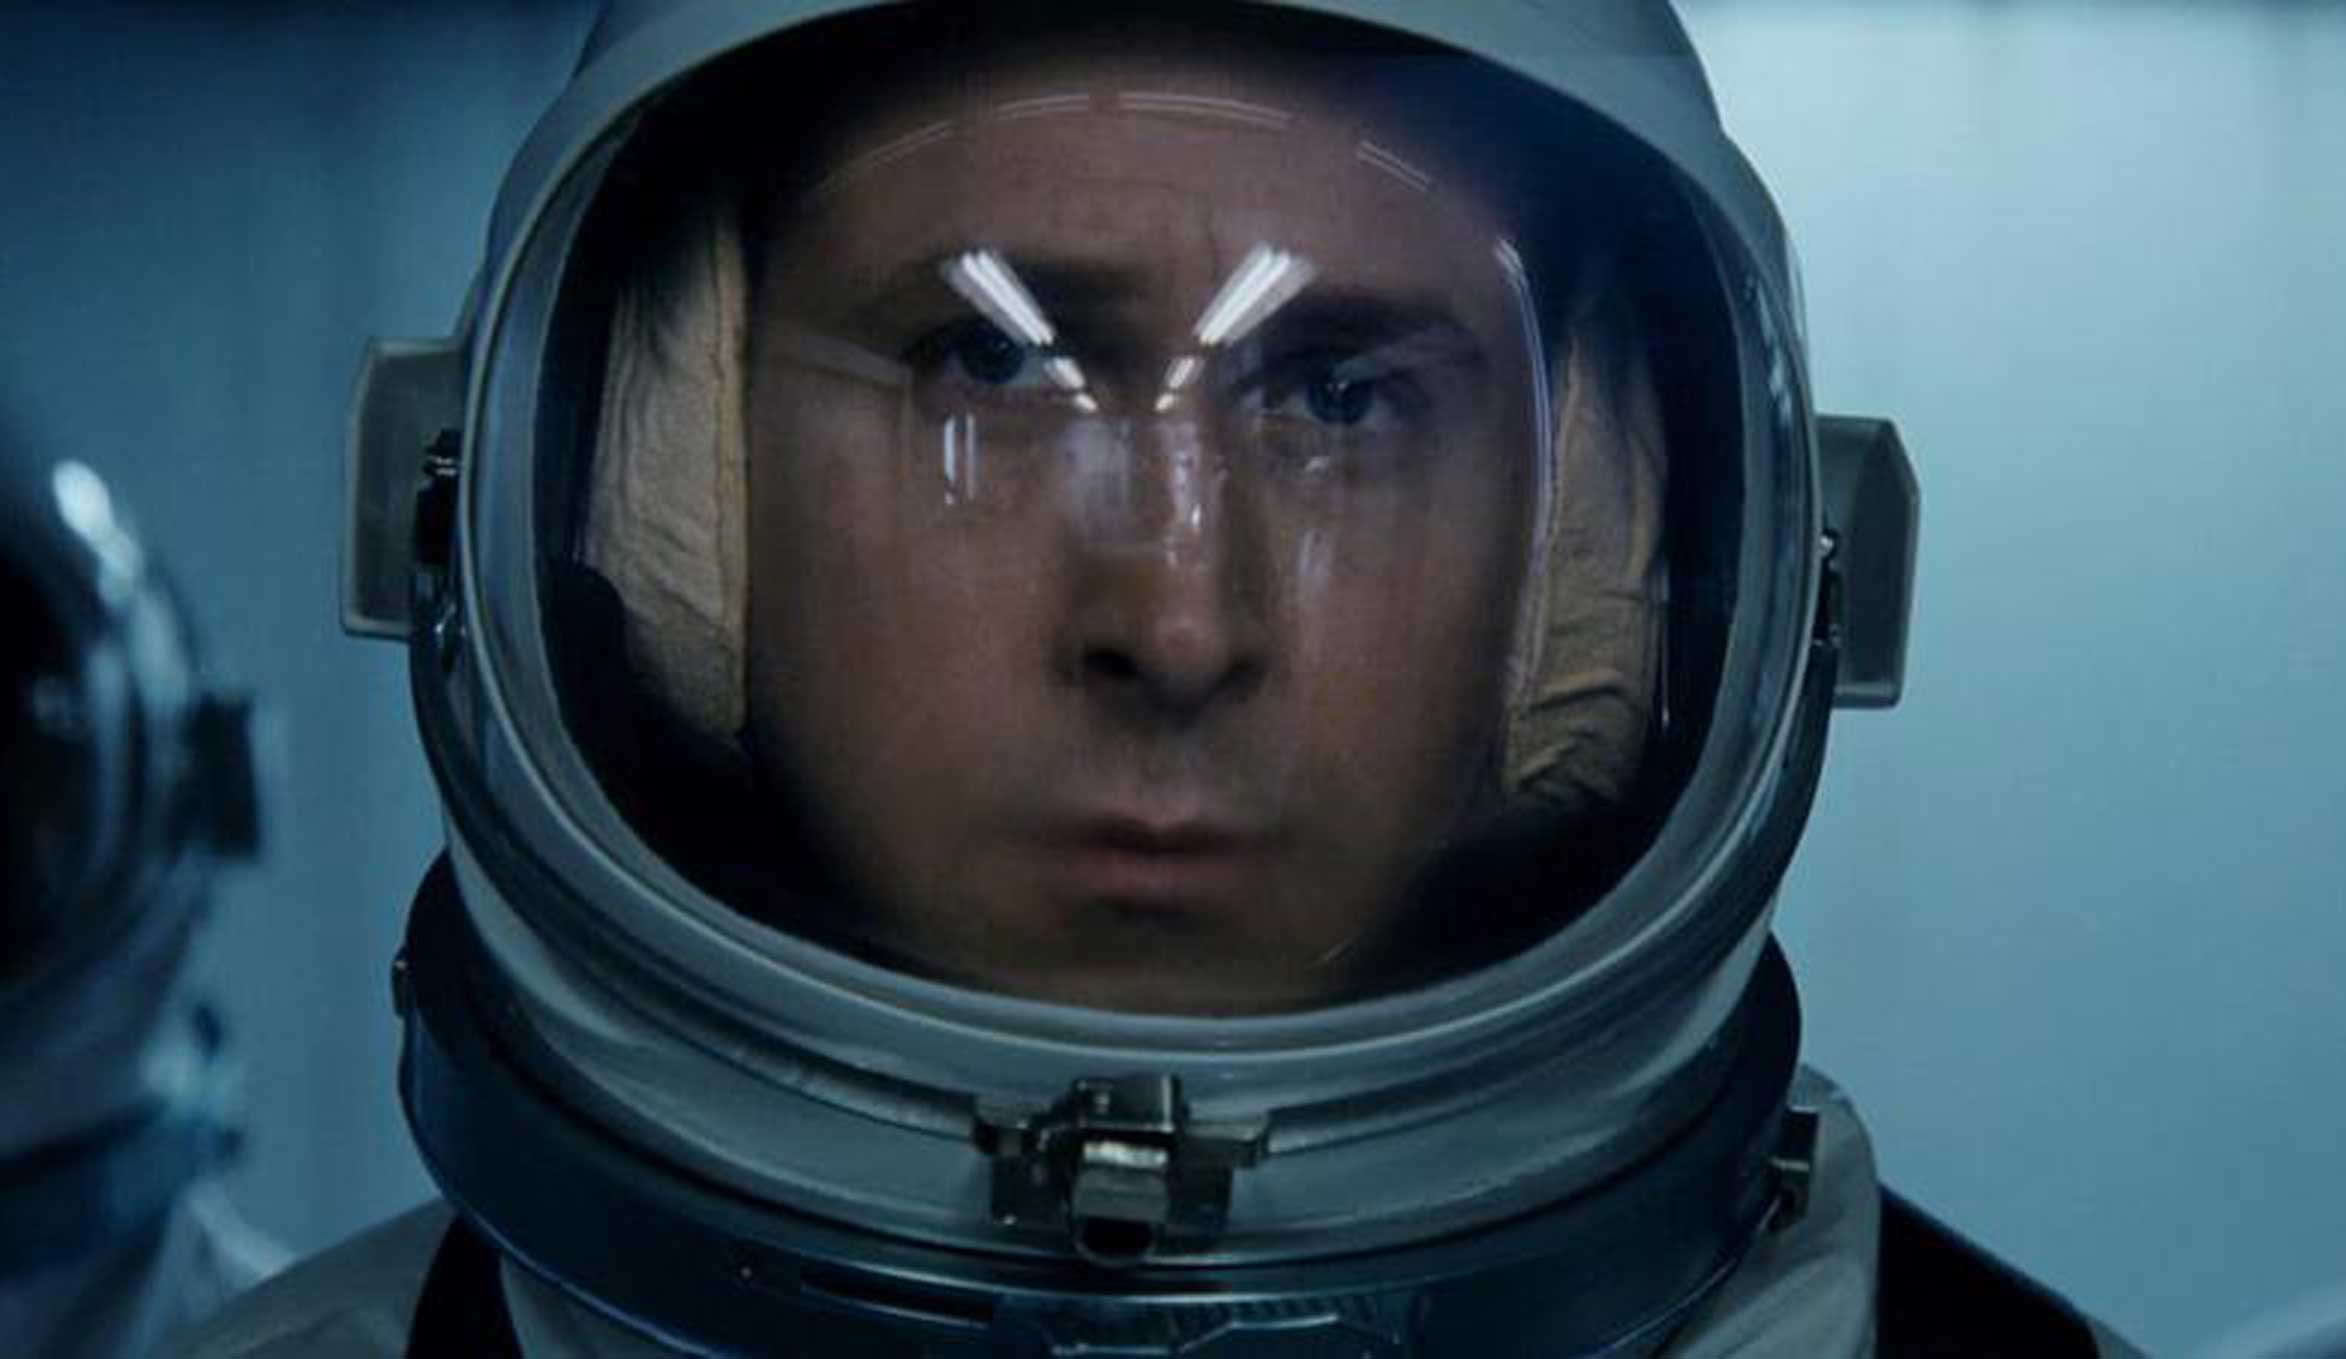 Ryan Gosling Takes One Giant Leap For Mankind In The First Trailer For 'First Man'